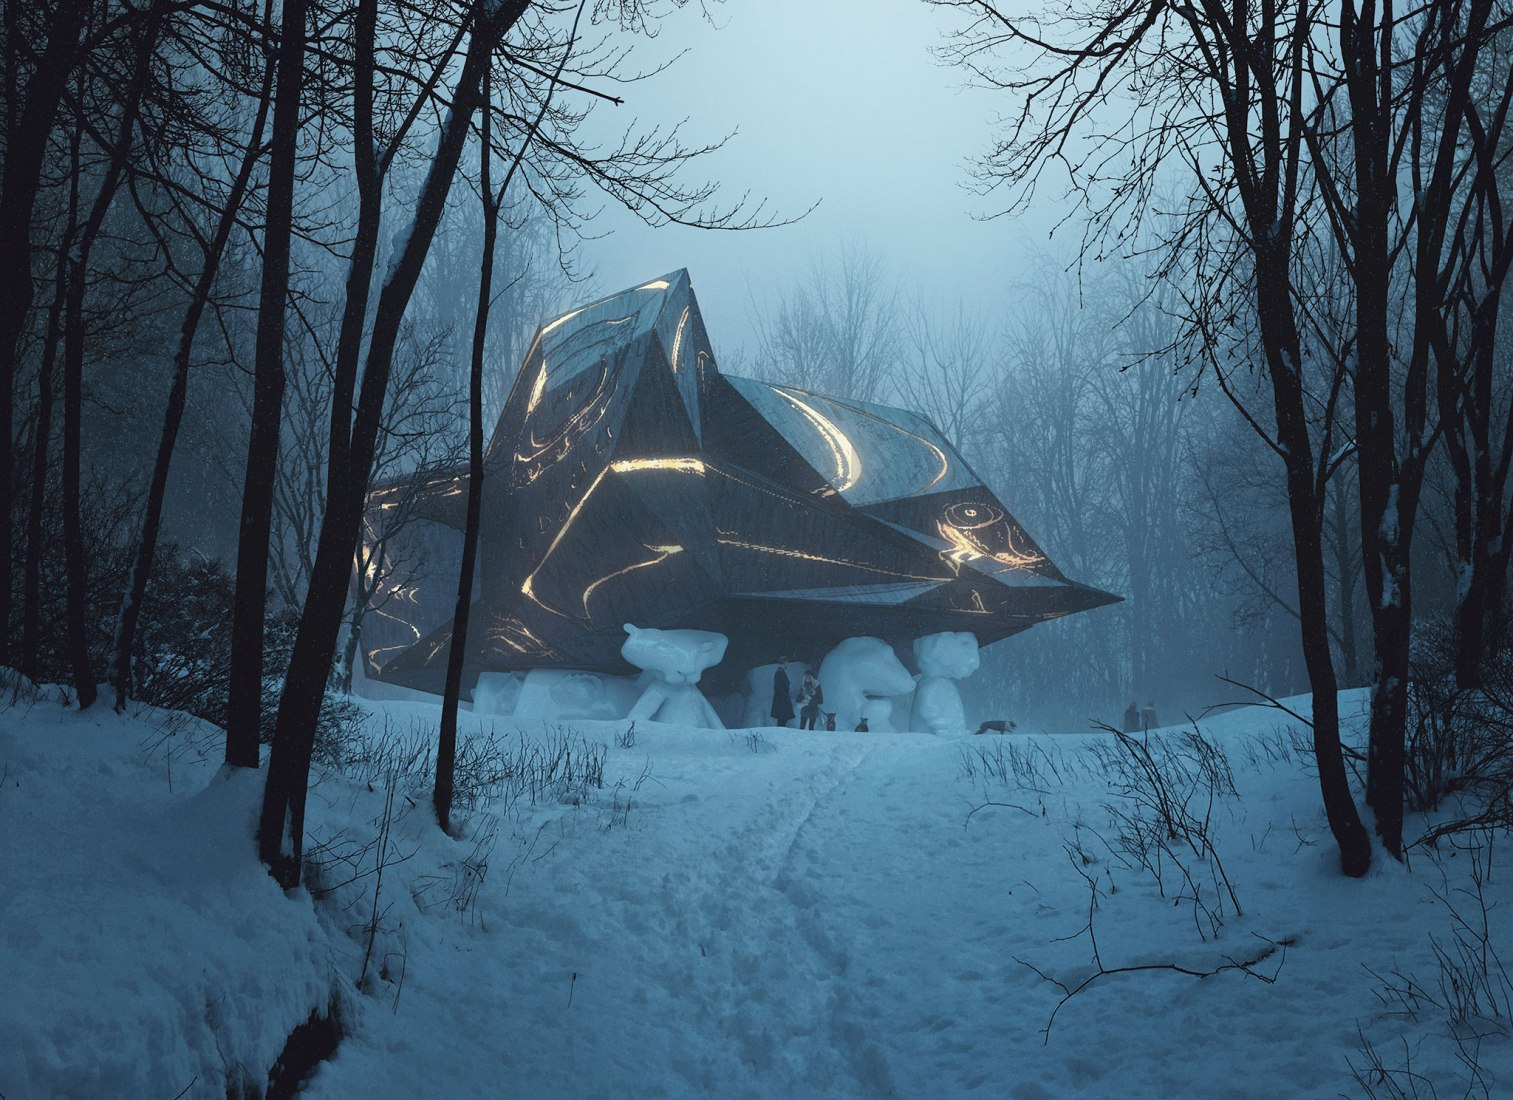 A House to Die In by Snøhetta. Image courtesy of Snøhetta